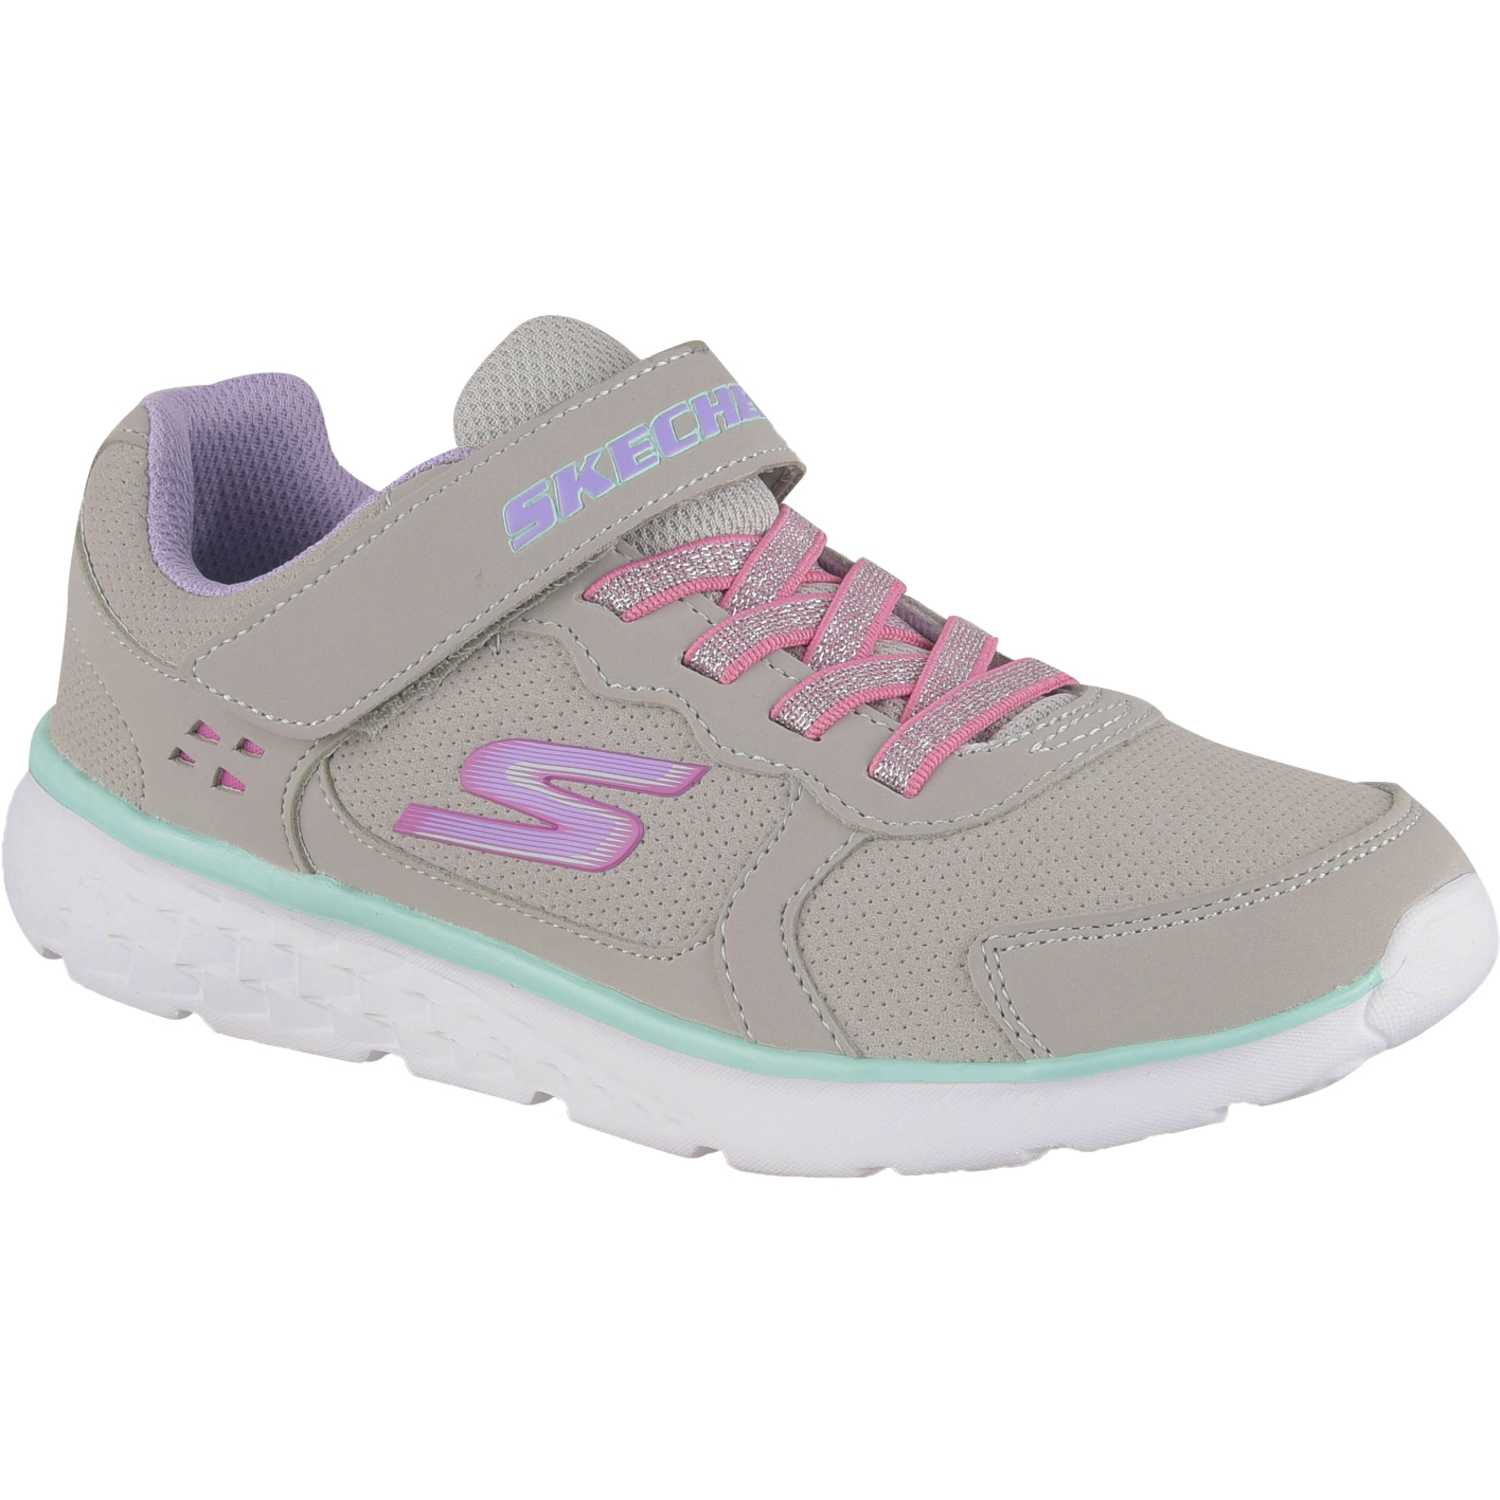 Zapatilla de Niña Skechers Gris / rosado go run 400 power on